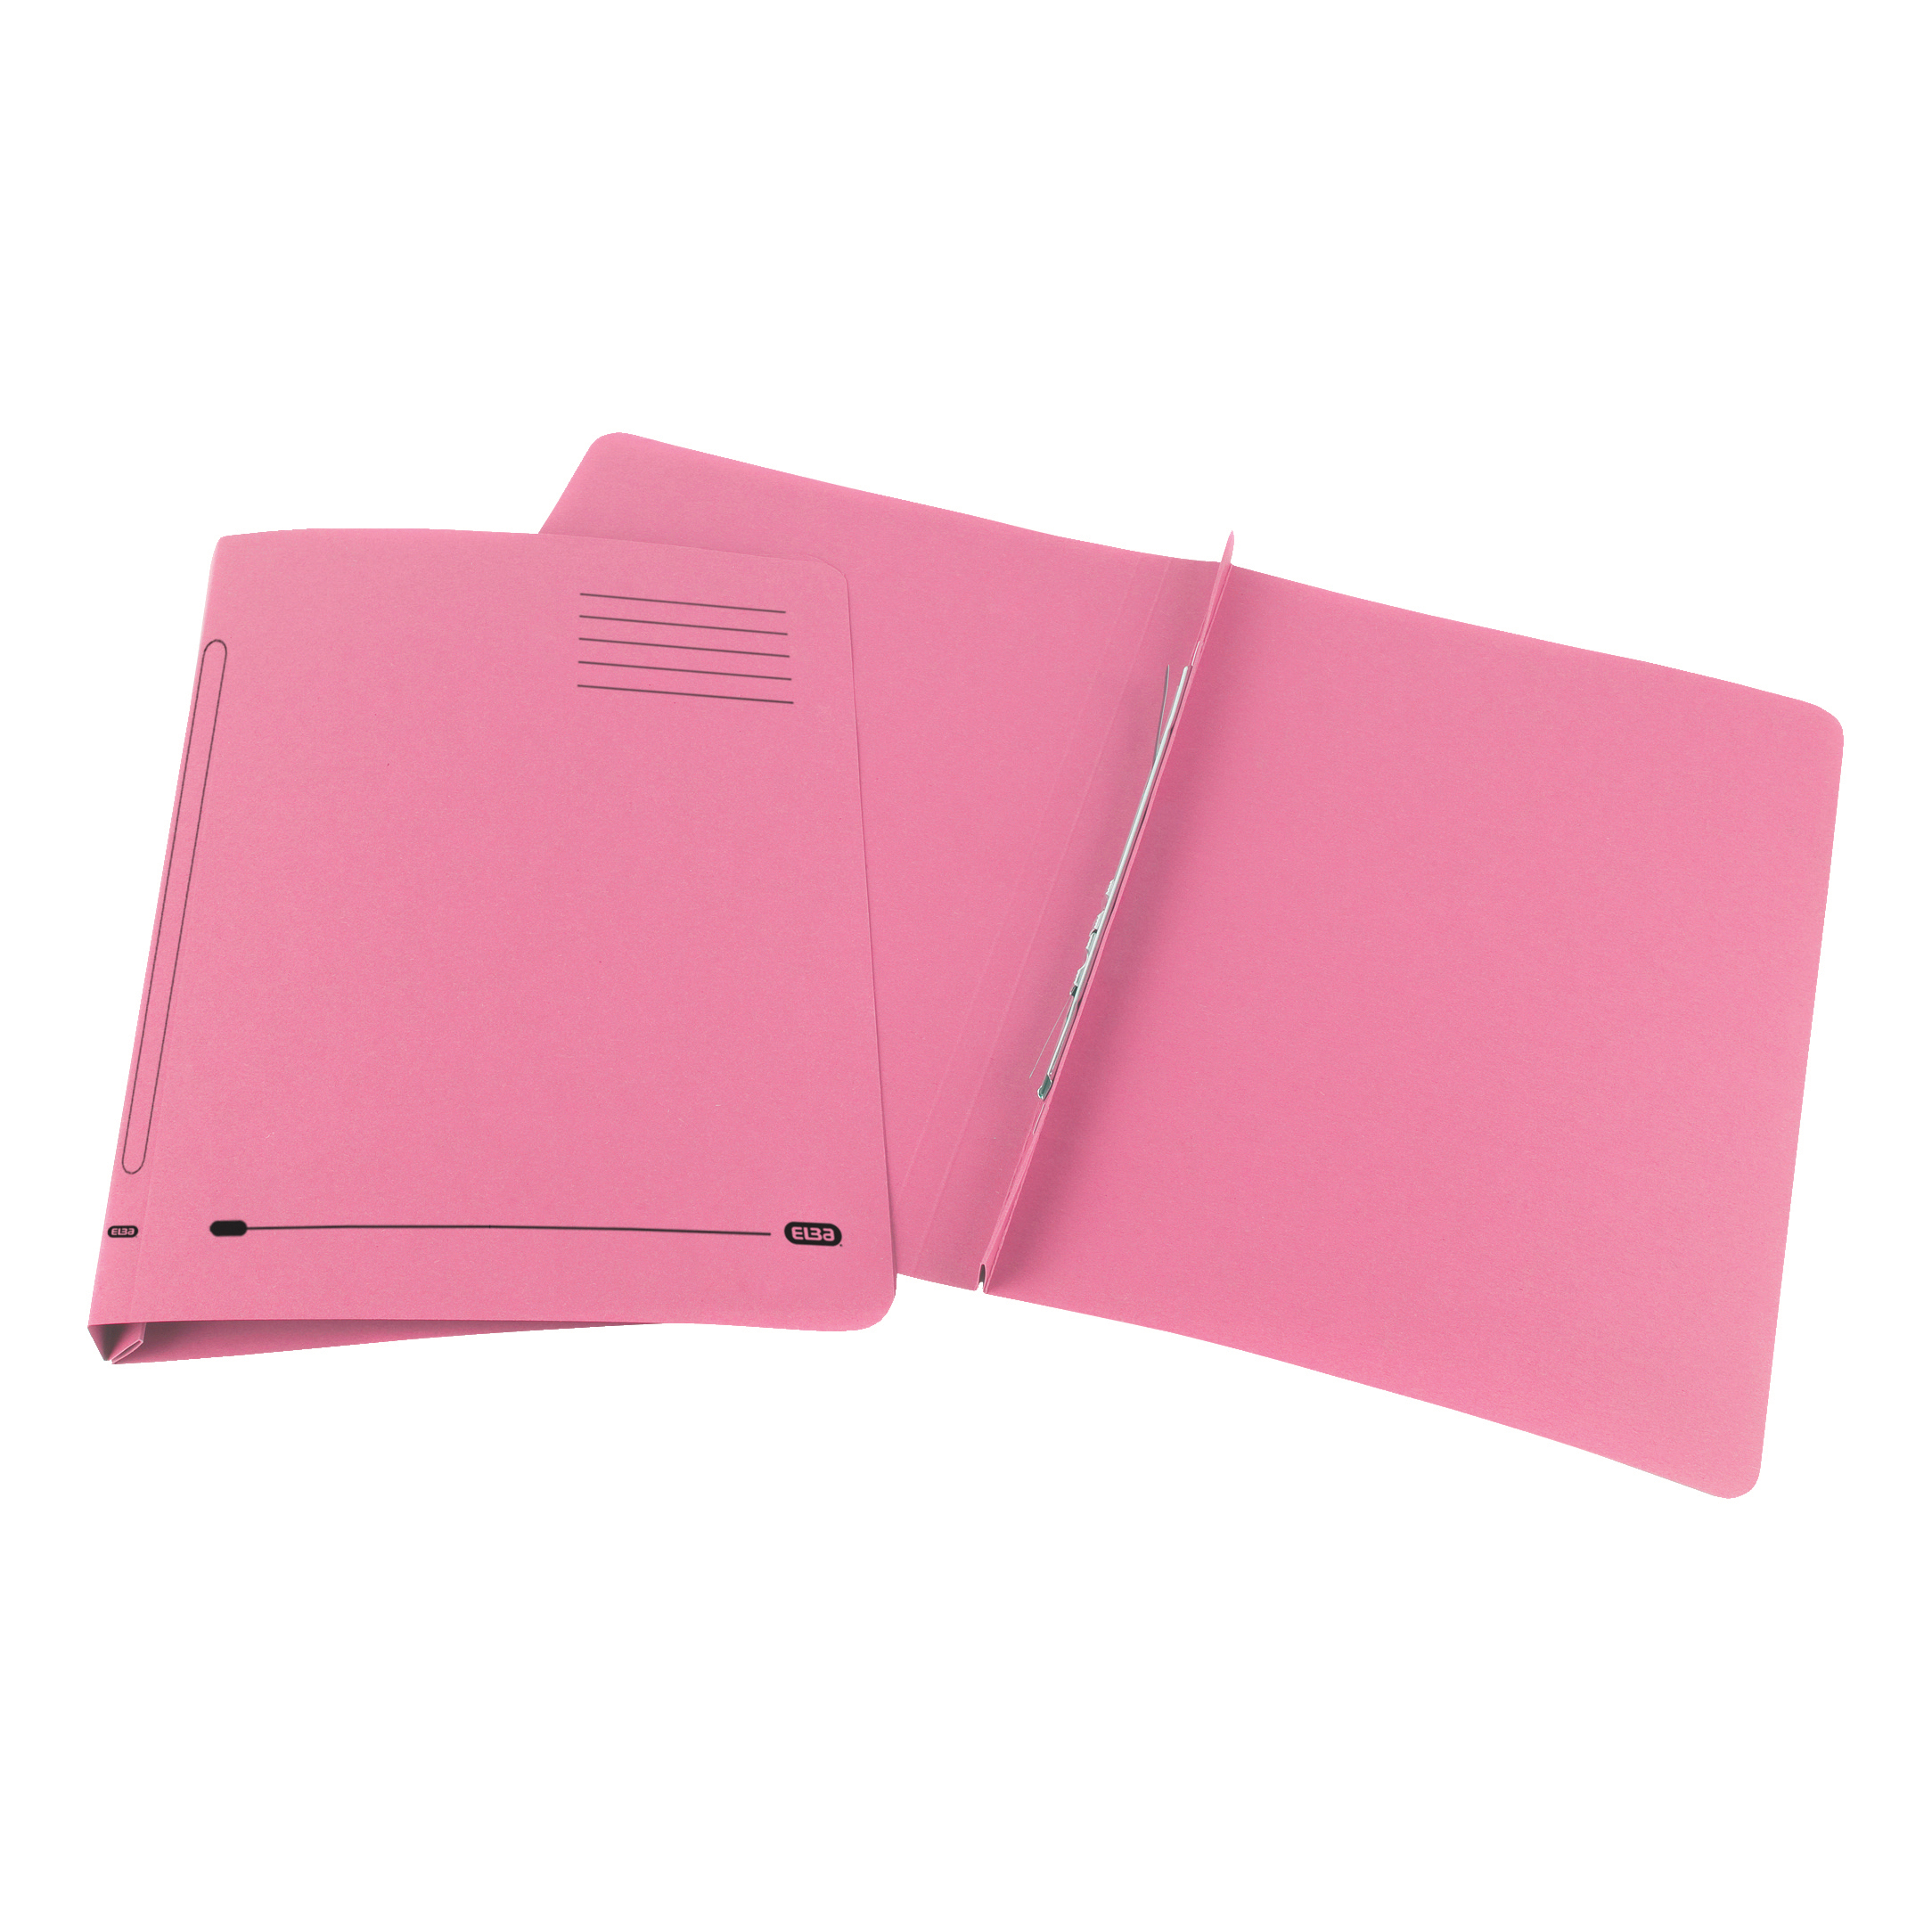 Elba Ashley Flat Bar File (no pocket) 285gsm Capacity 35mm Foolscap Pink Ref 100090155 Pack 25